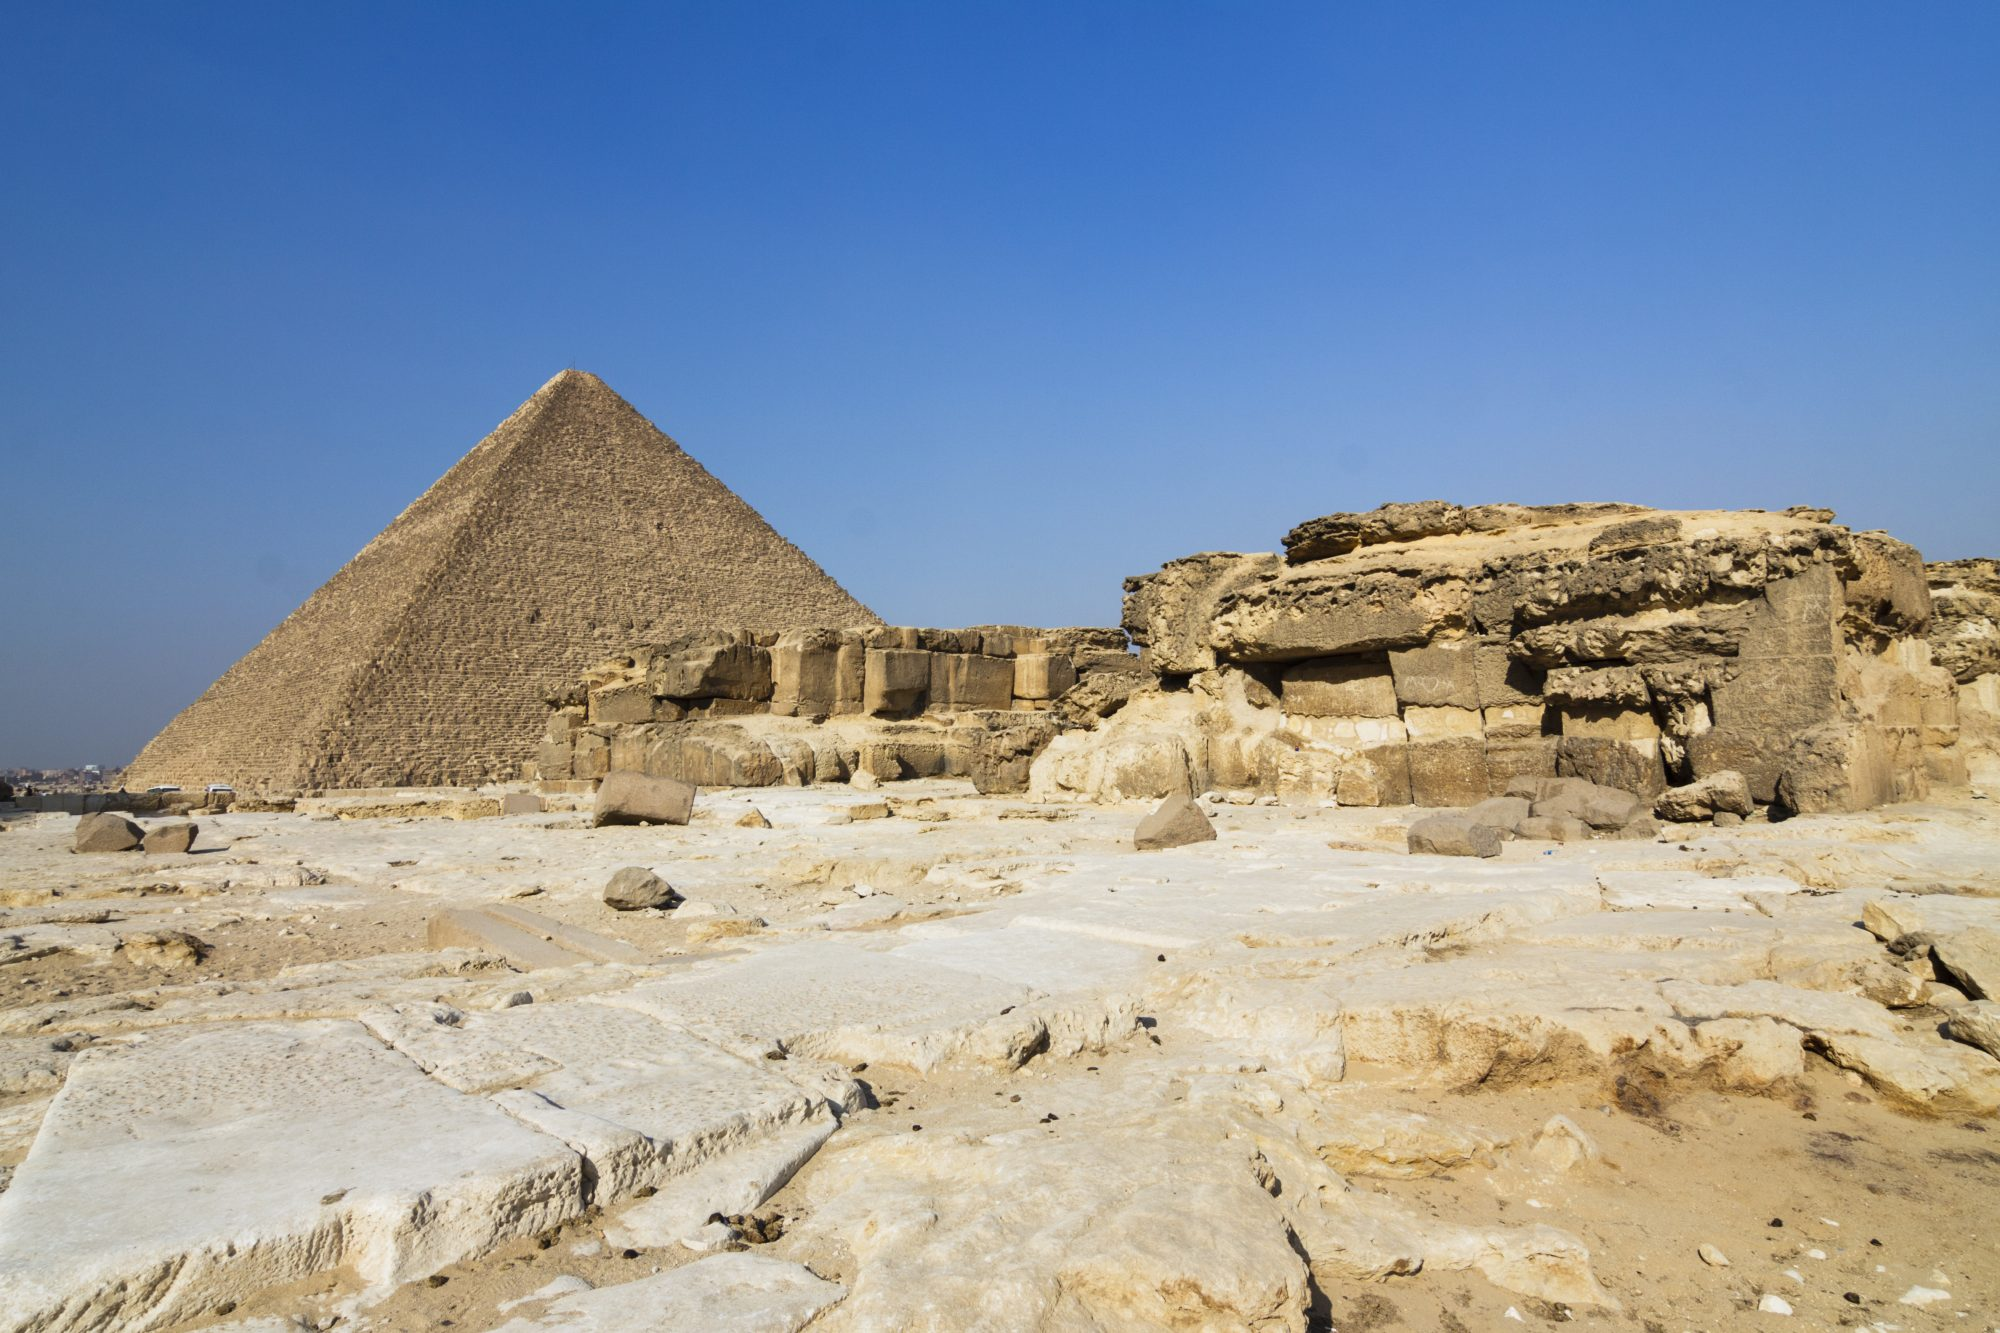 3,200-Year-Old Cheese Found in Egyptian Tomb